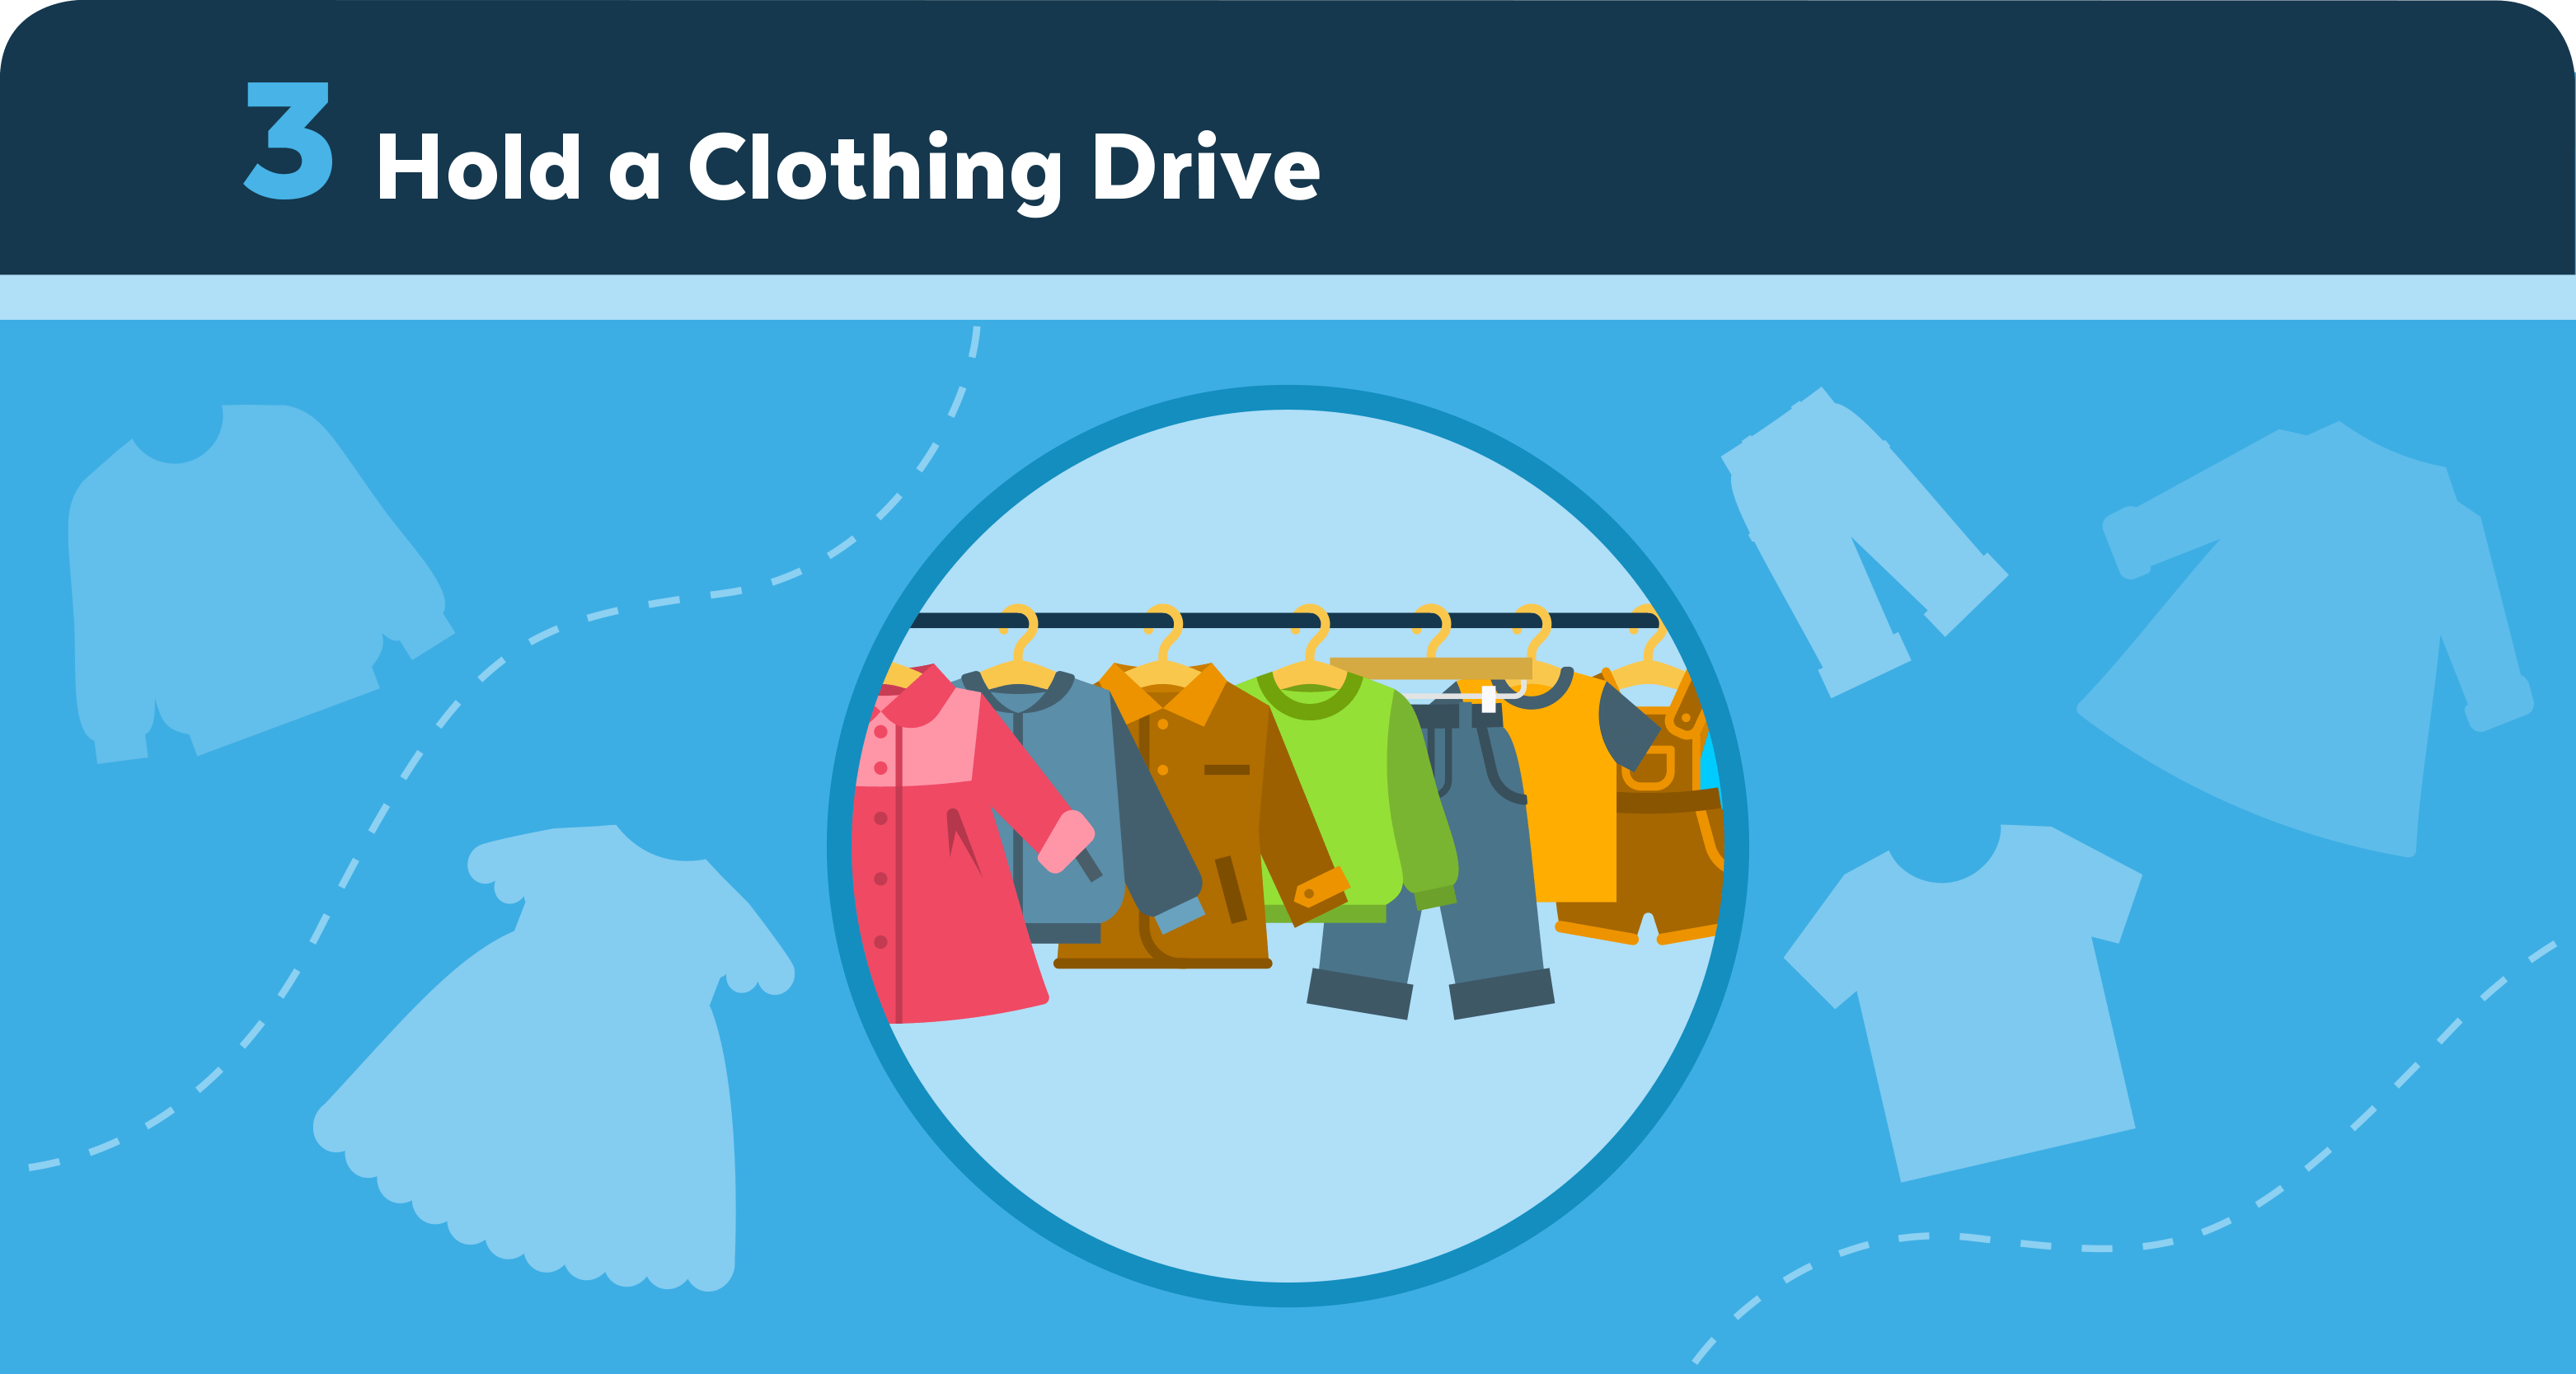 Hold a Clothing Drive